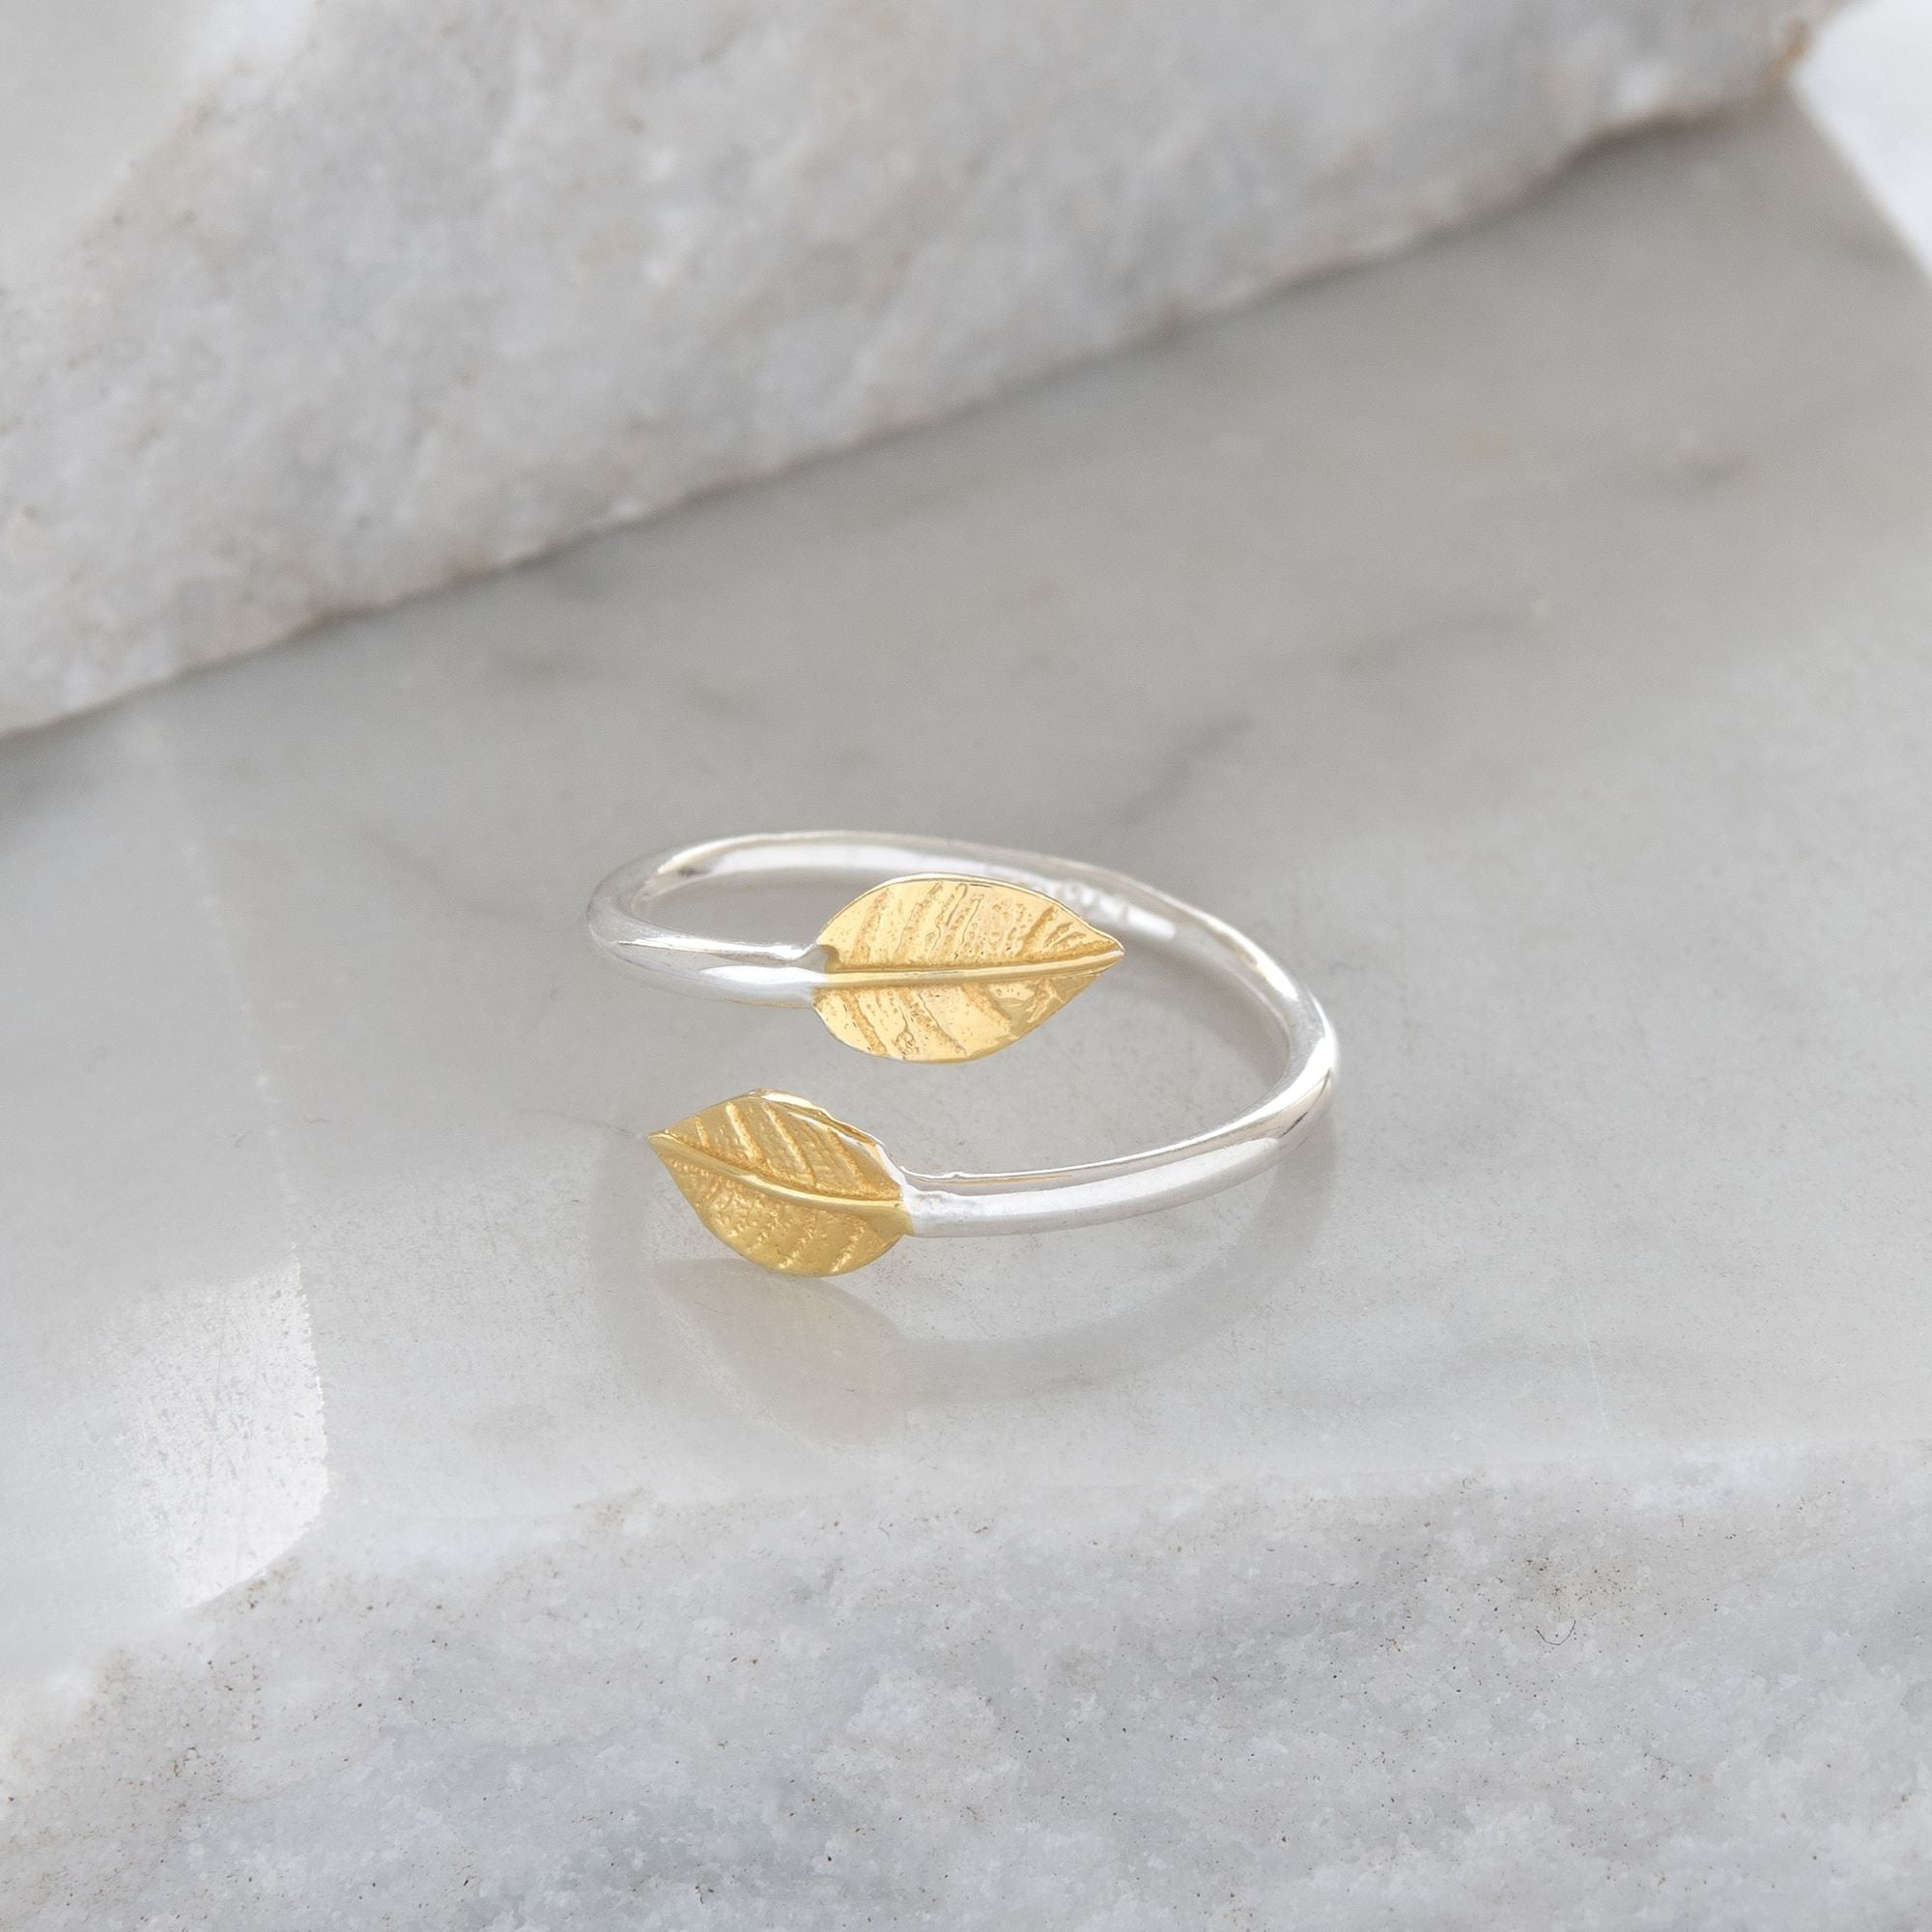 Adjustable Double Leaf Charm Ring Sterling Silver and Gold Vermeil